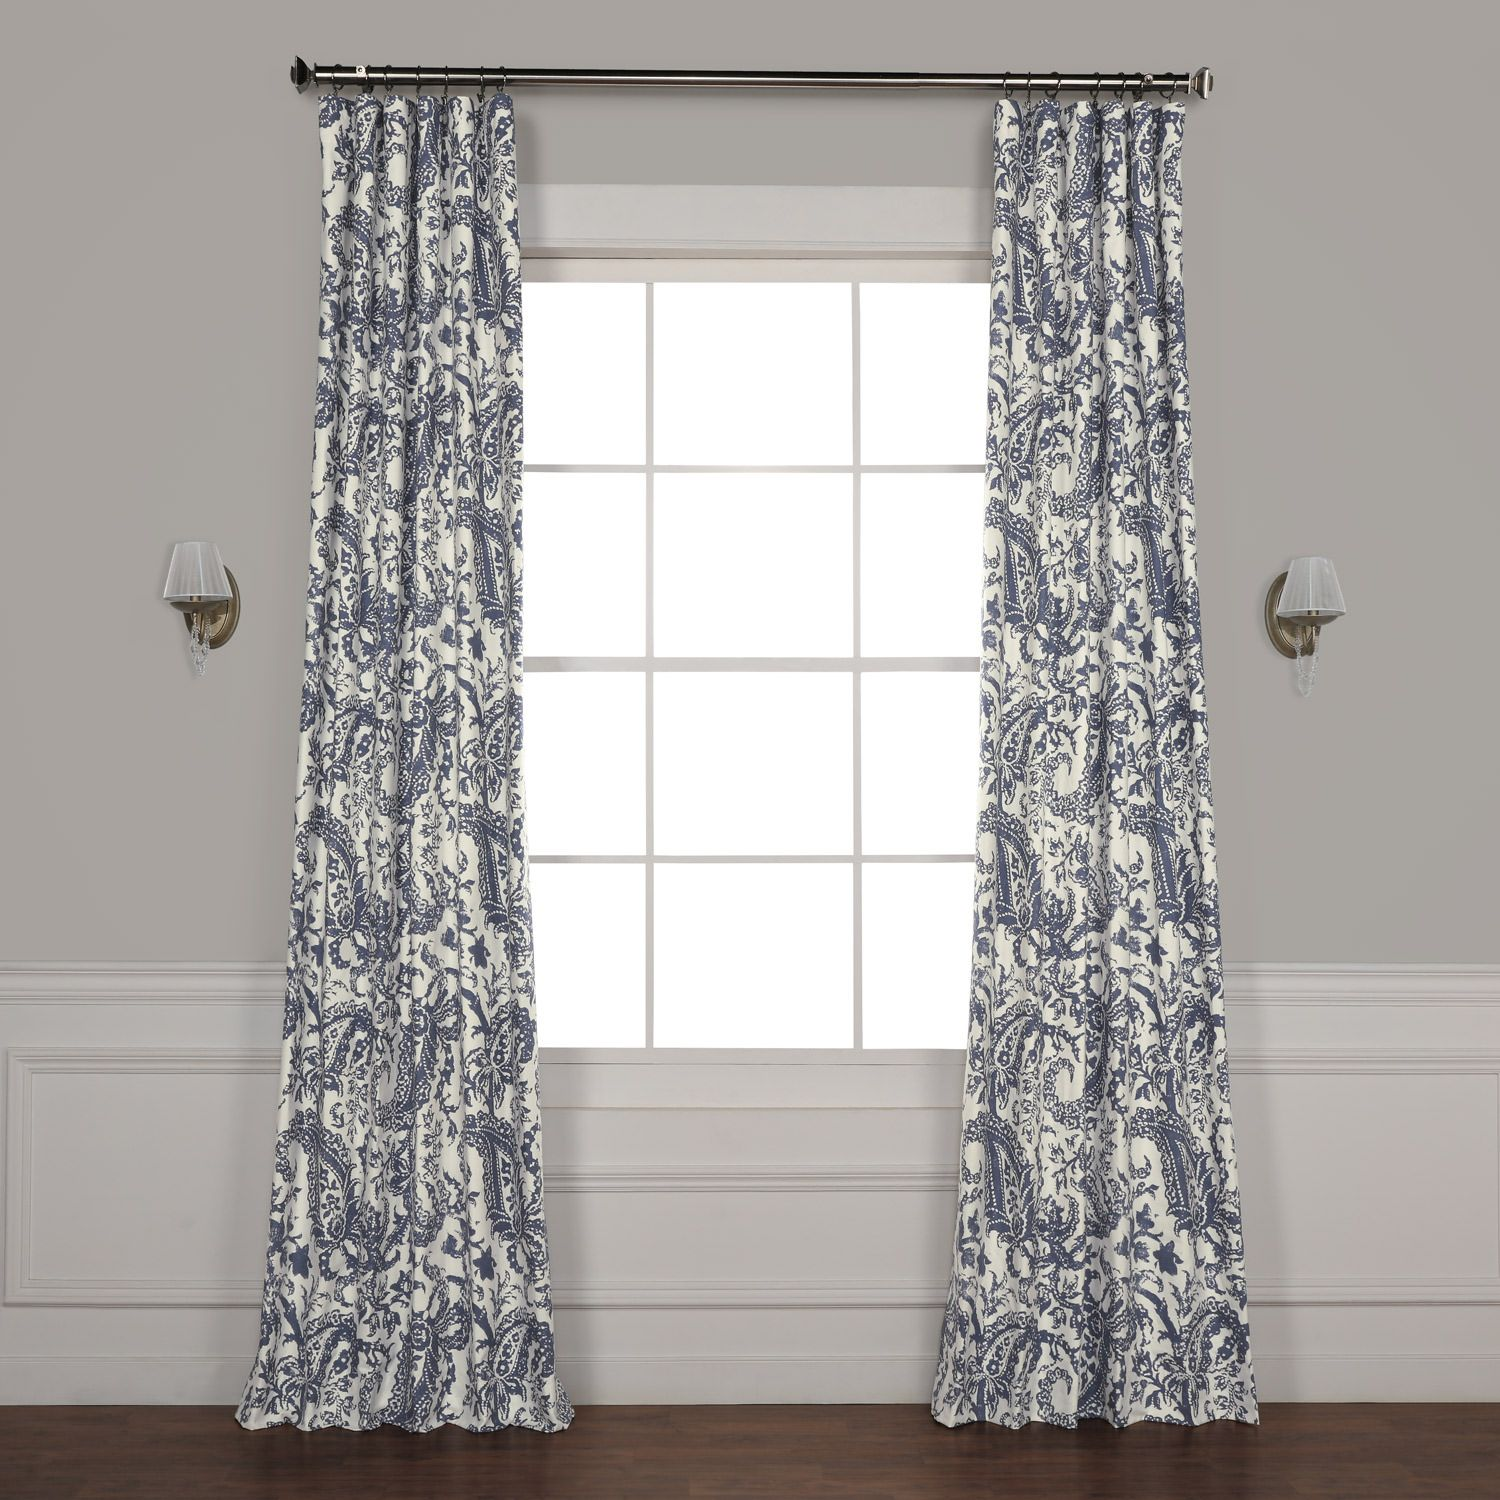 Half Price Drapes Edina Washed Blue 108 In X 50 In Printed Cotton Curtain Panel Prct D09e 108 Bellacor In 2020 Printed Cotton Curtain Half Price Drapes Panel Curtains